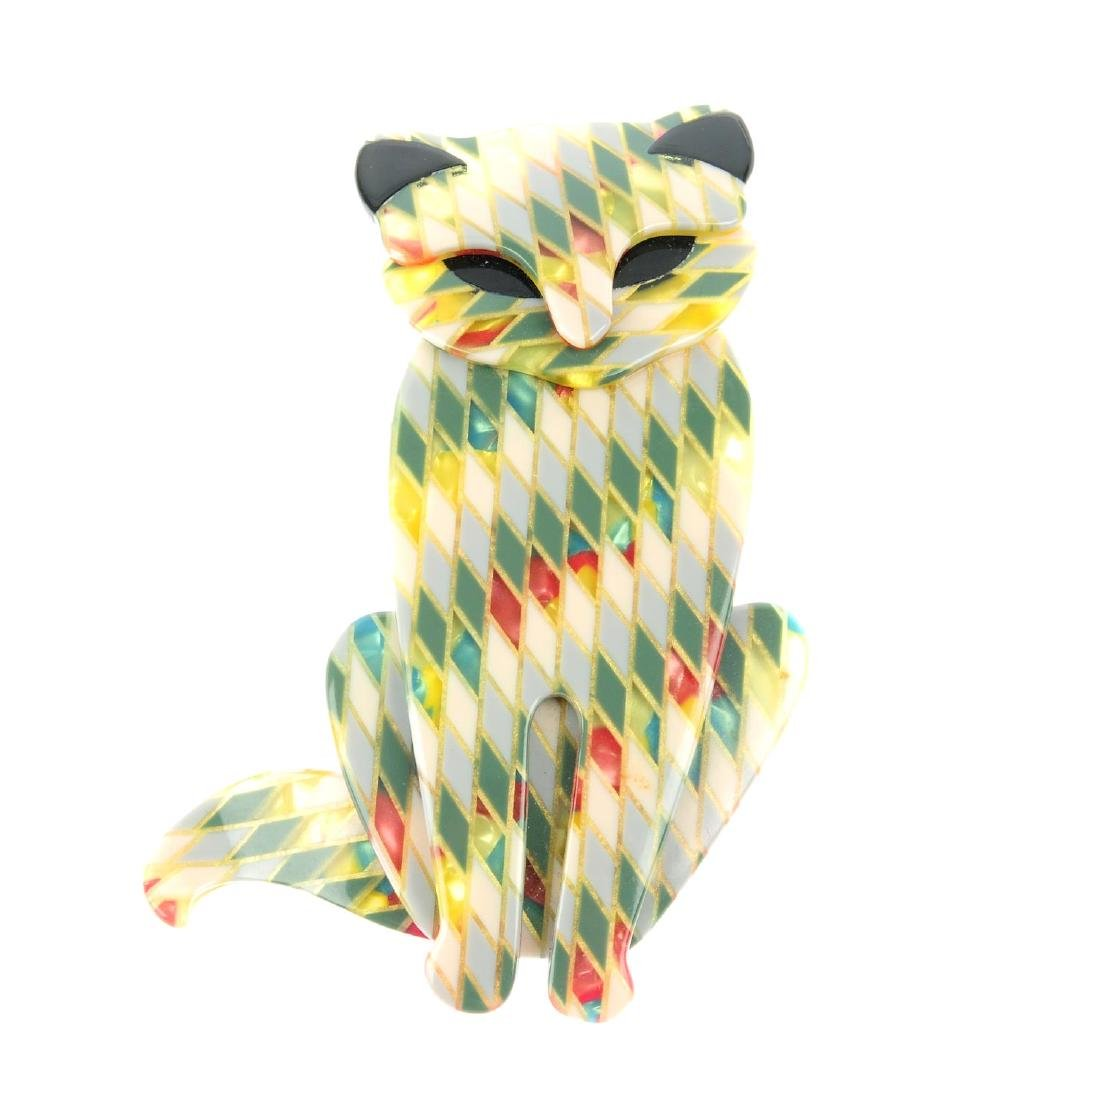 LEA STEIN - a cat brooch. The layered cat-shape brooch,